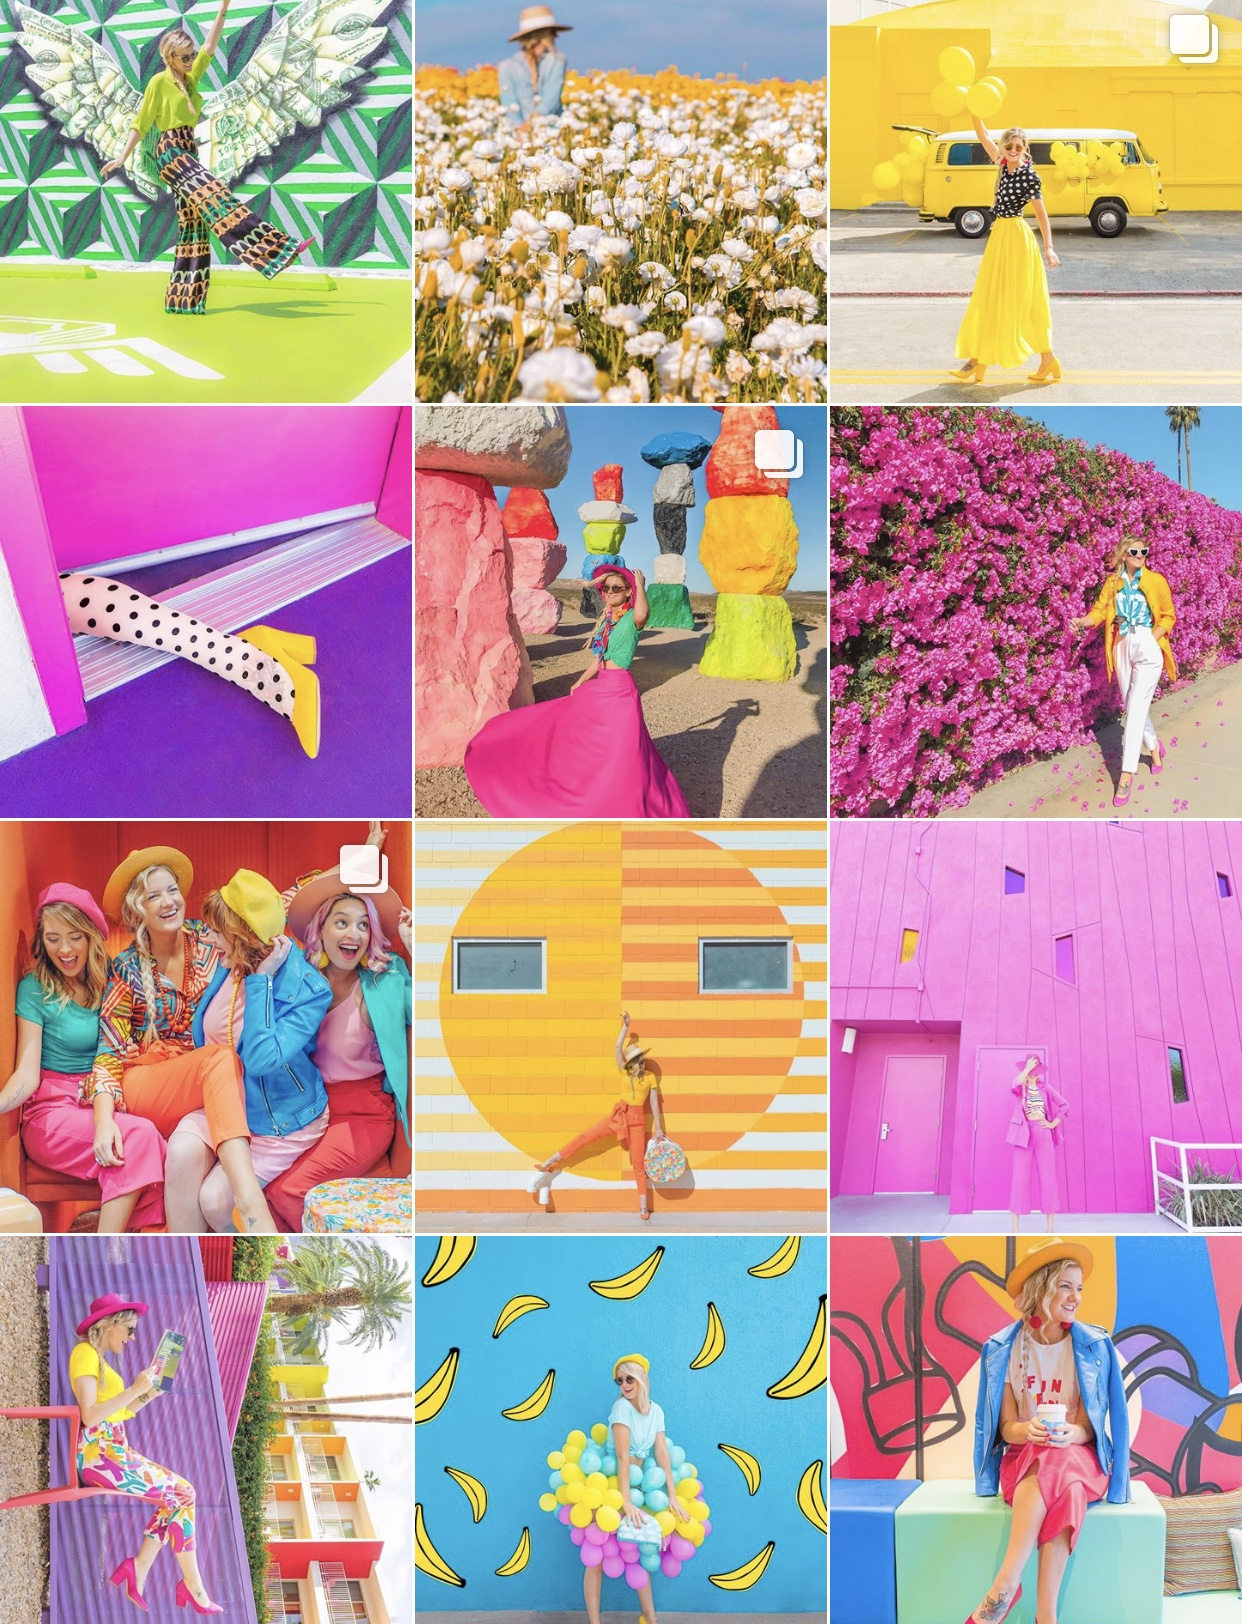 Instagram:  Leslie Schneider   Leslie's account is newer to me, but it makes me happy with all its fun color